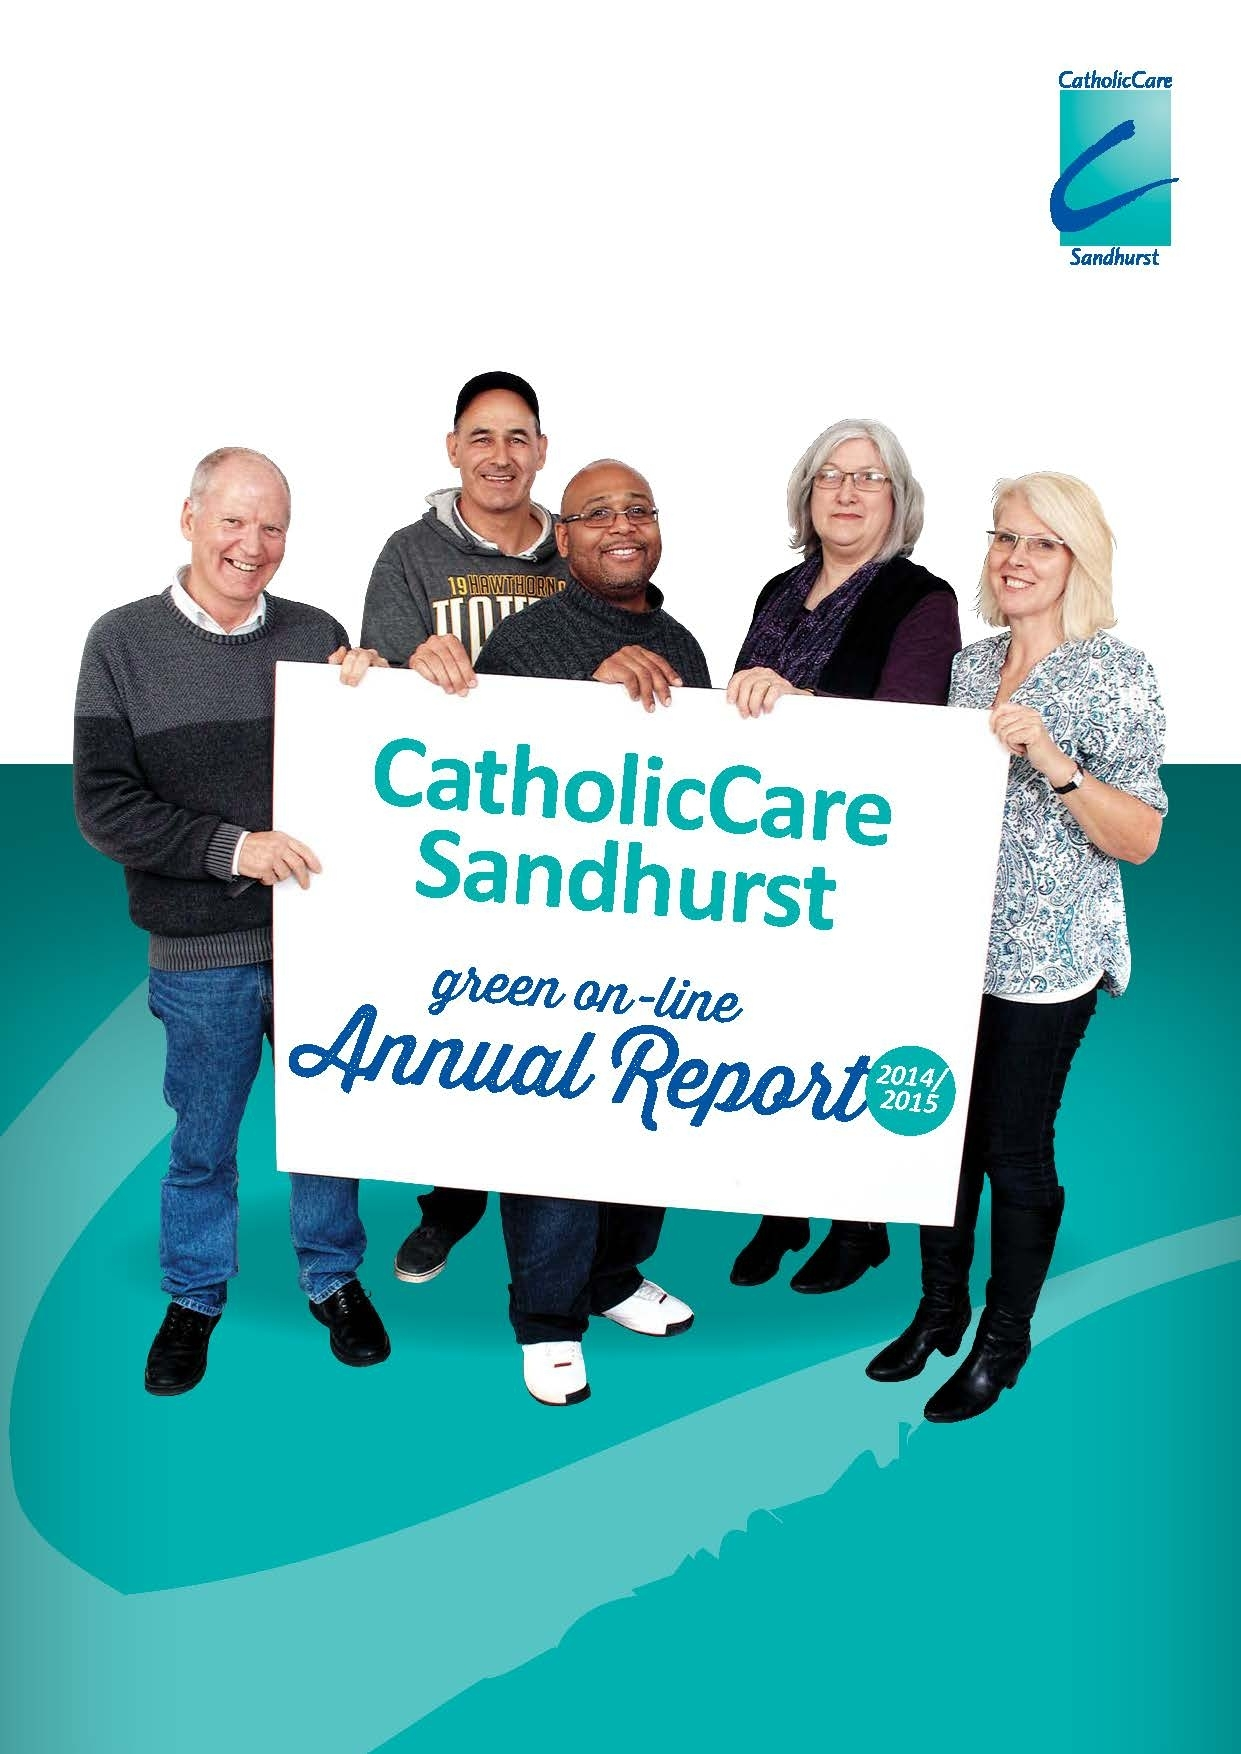 CatholicCare Sandhurst Annual Report 2014-15_Page_01.jpg